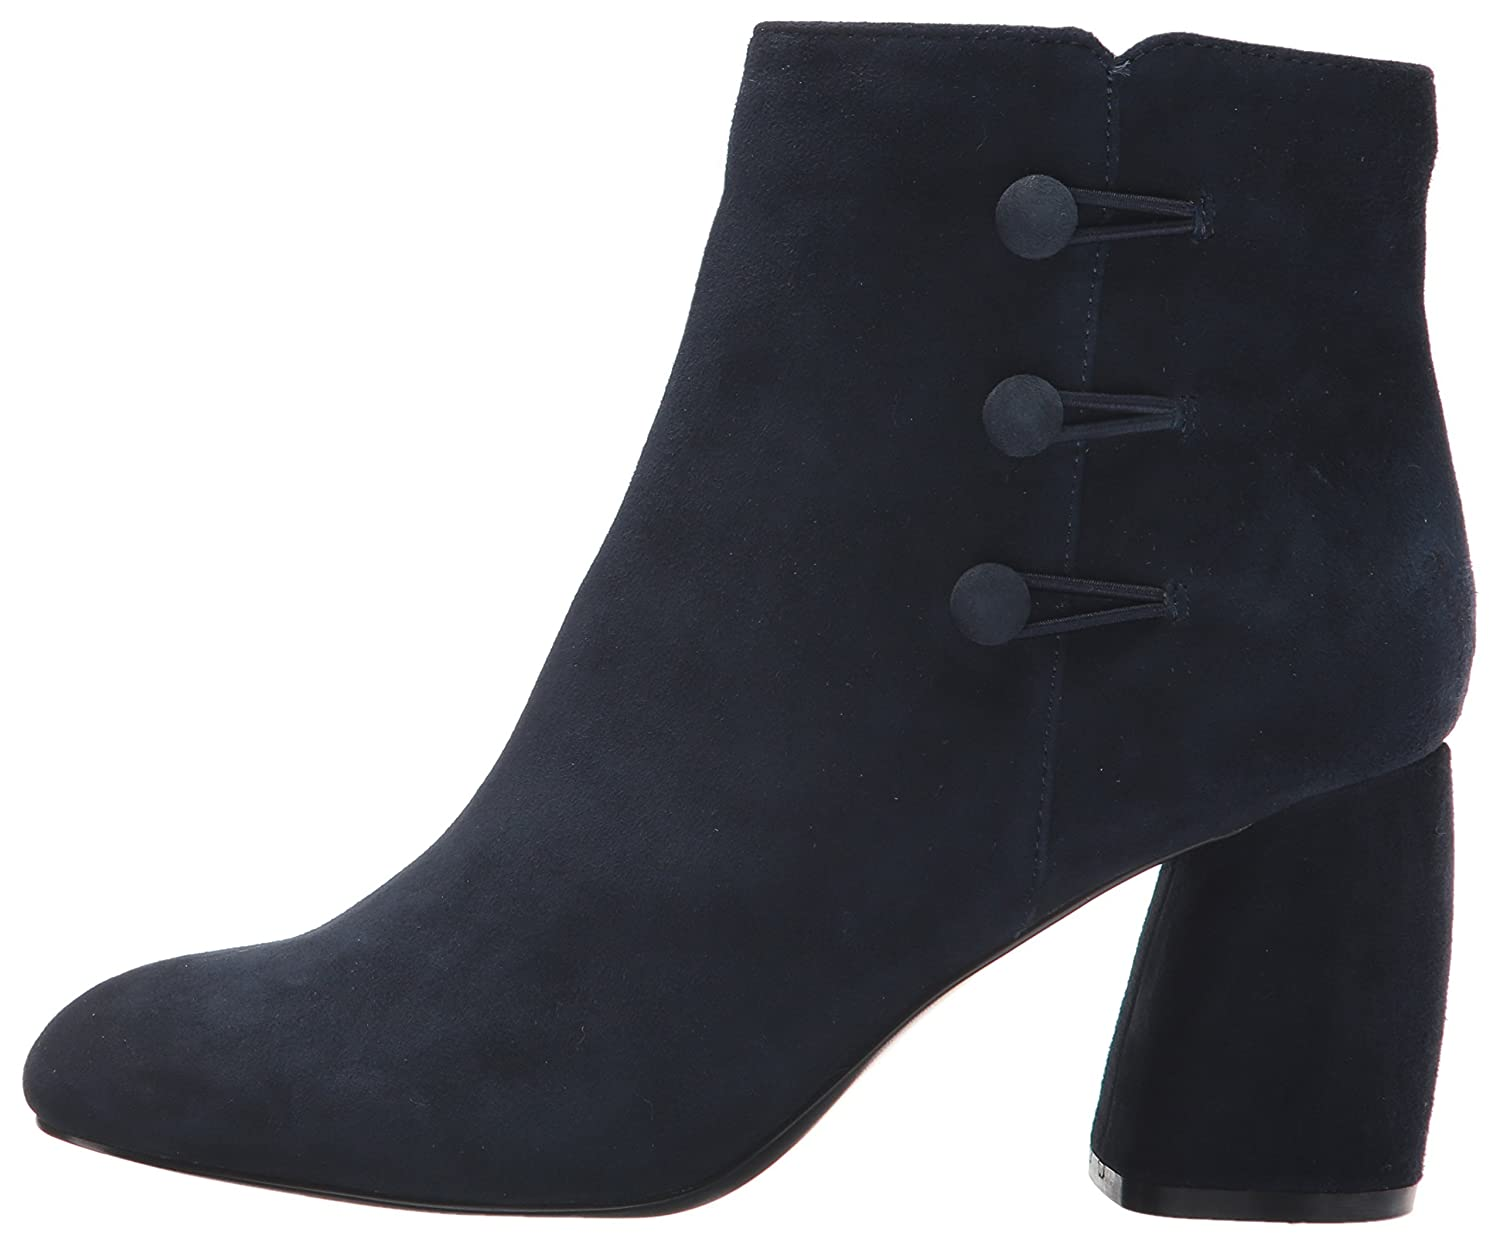 Nine West Women's Khraine Suede Ankle Boot B071HQ98Z9 6 B(M) US|Navy/Navy Suede